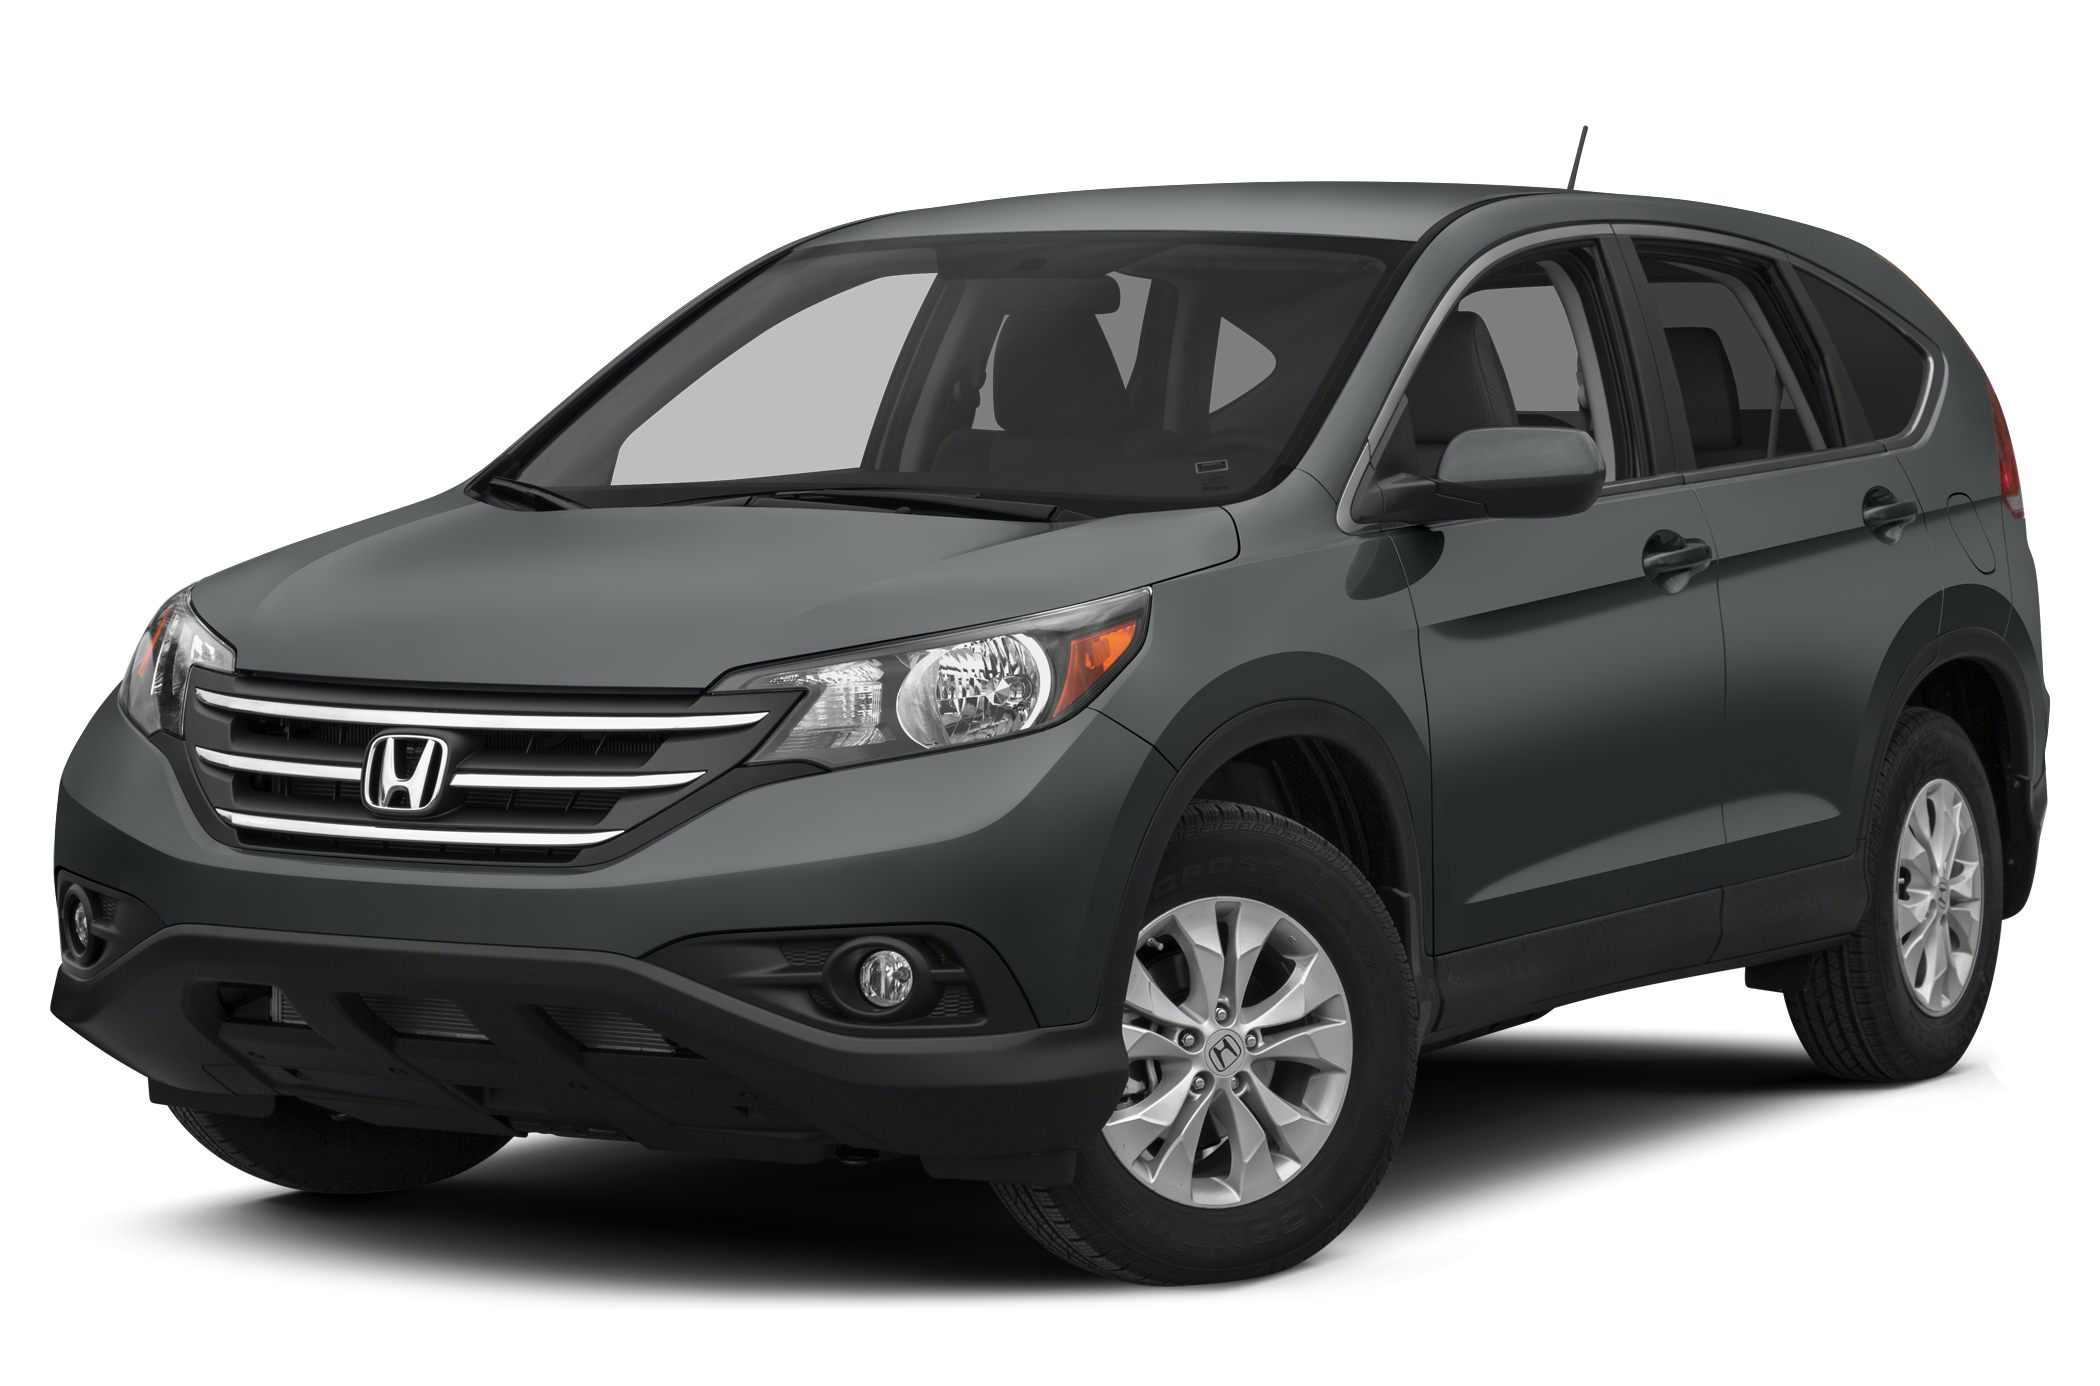 2014 Honda CR-V EX WAS 23000 FUEL EFFICIENT 31 MPG Hwy23 MPG City PRICED TO MOVE 200 below